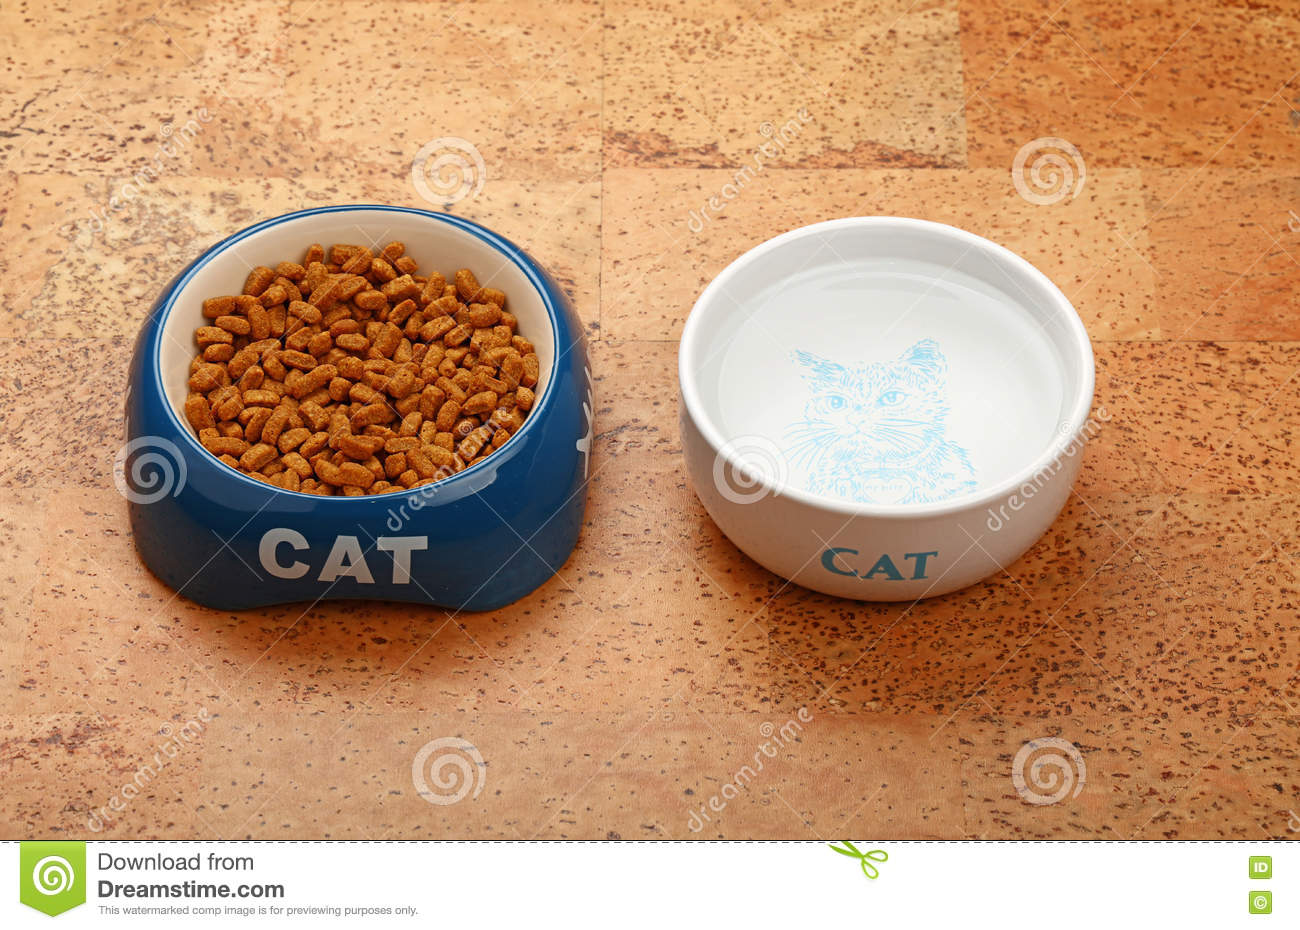 Should You Put Water In Dry Cat Food